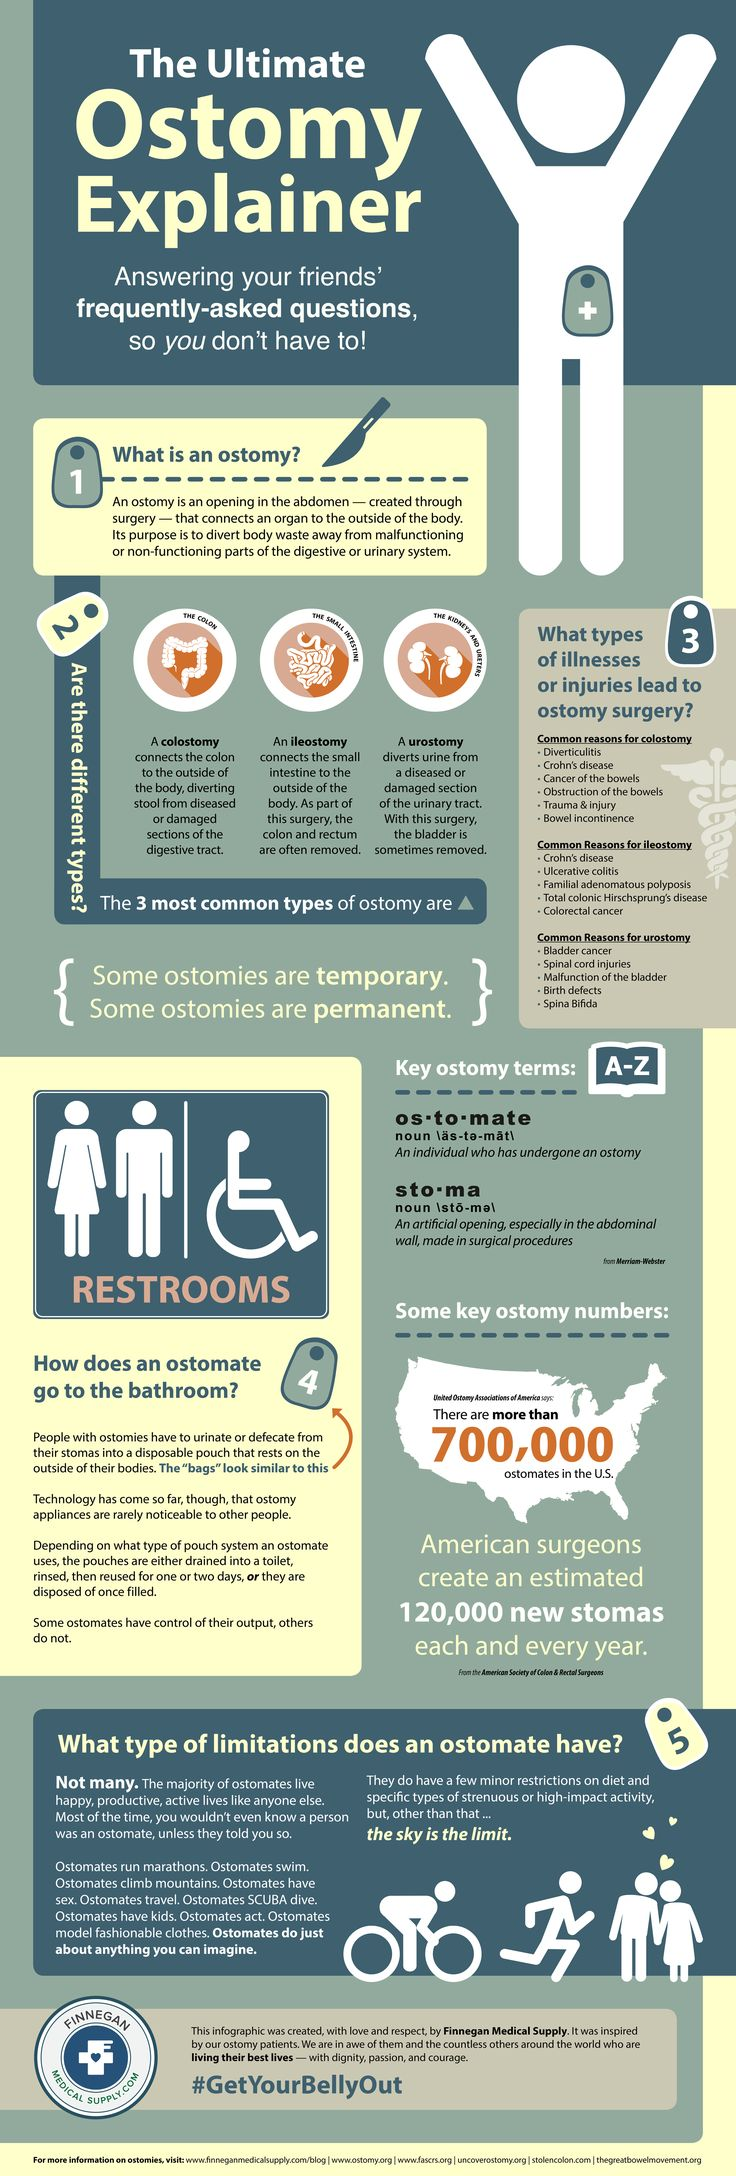 [Infographic] The Ultimate Ostomy Explainer #infographic #ostomy from The Prescription Pad at https://www.finneganmedicalsupply.com/blog/infographic-the-ultimate-ostomy-explainer